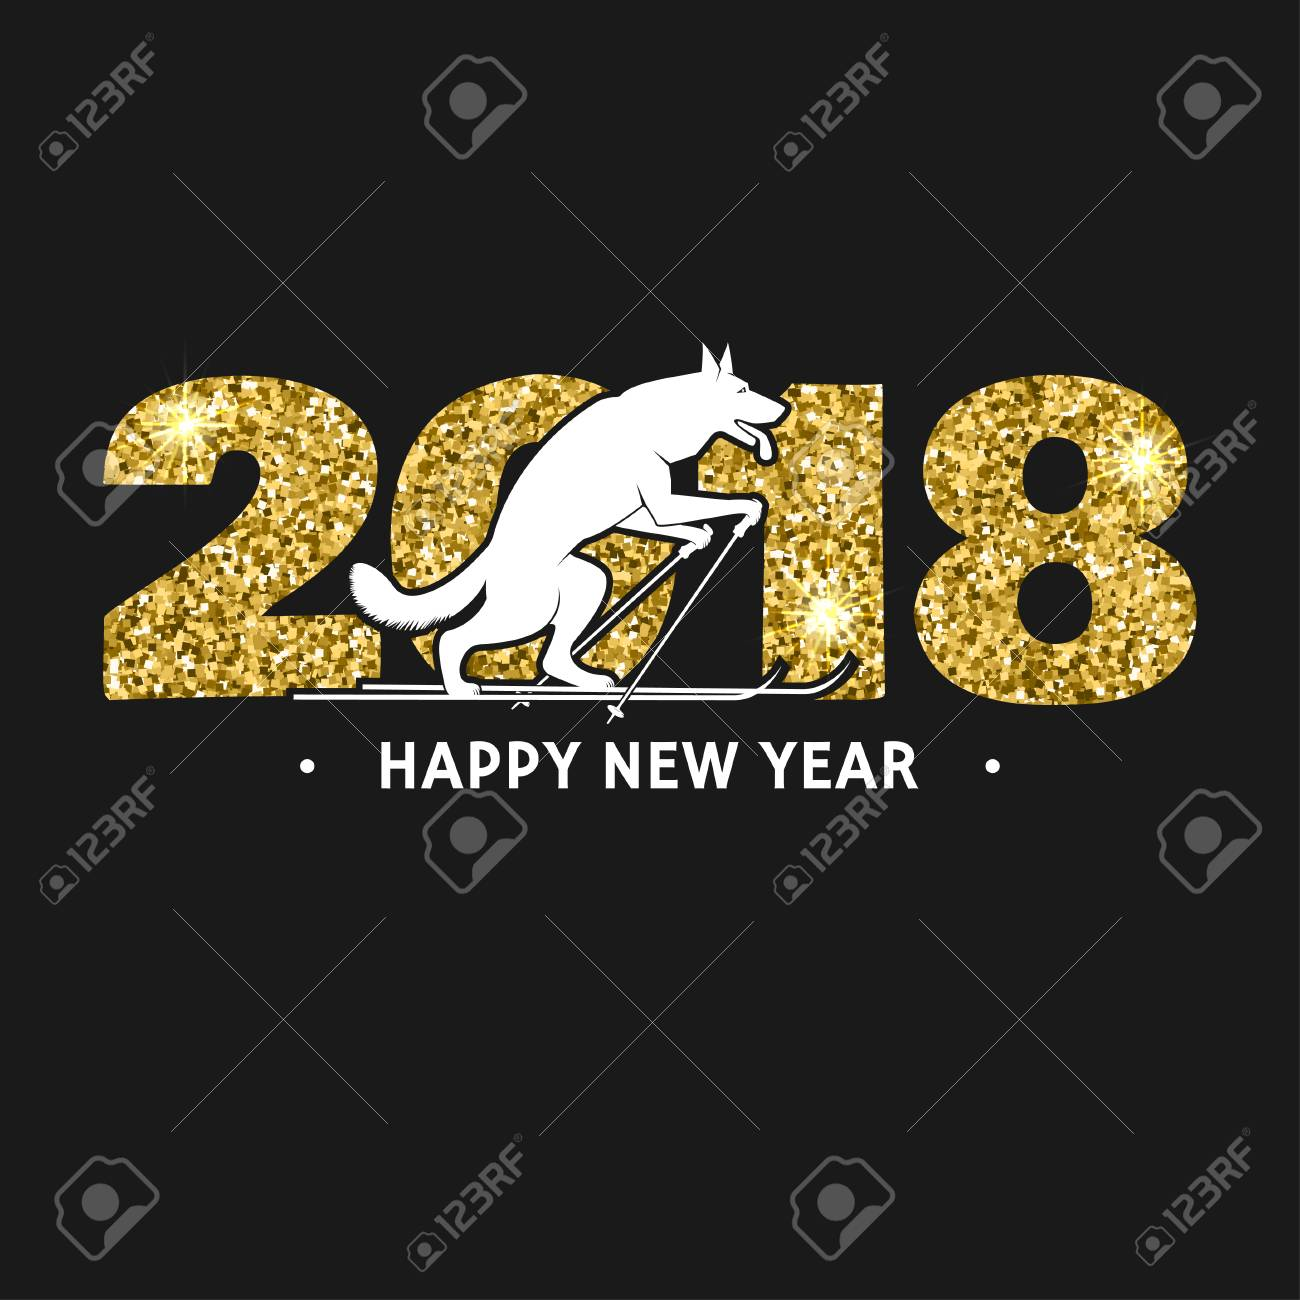 2018 Happy New Year Greeting Card Royalty Free Cliparts Vectors